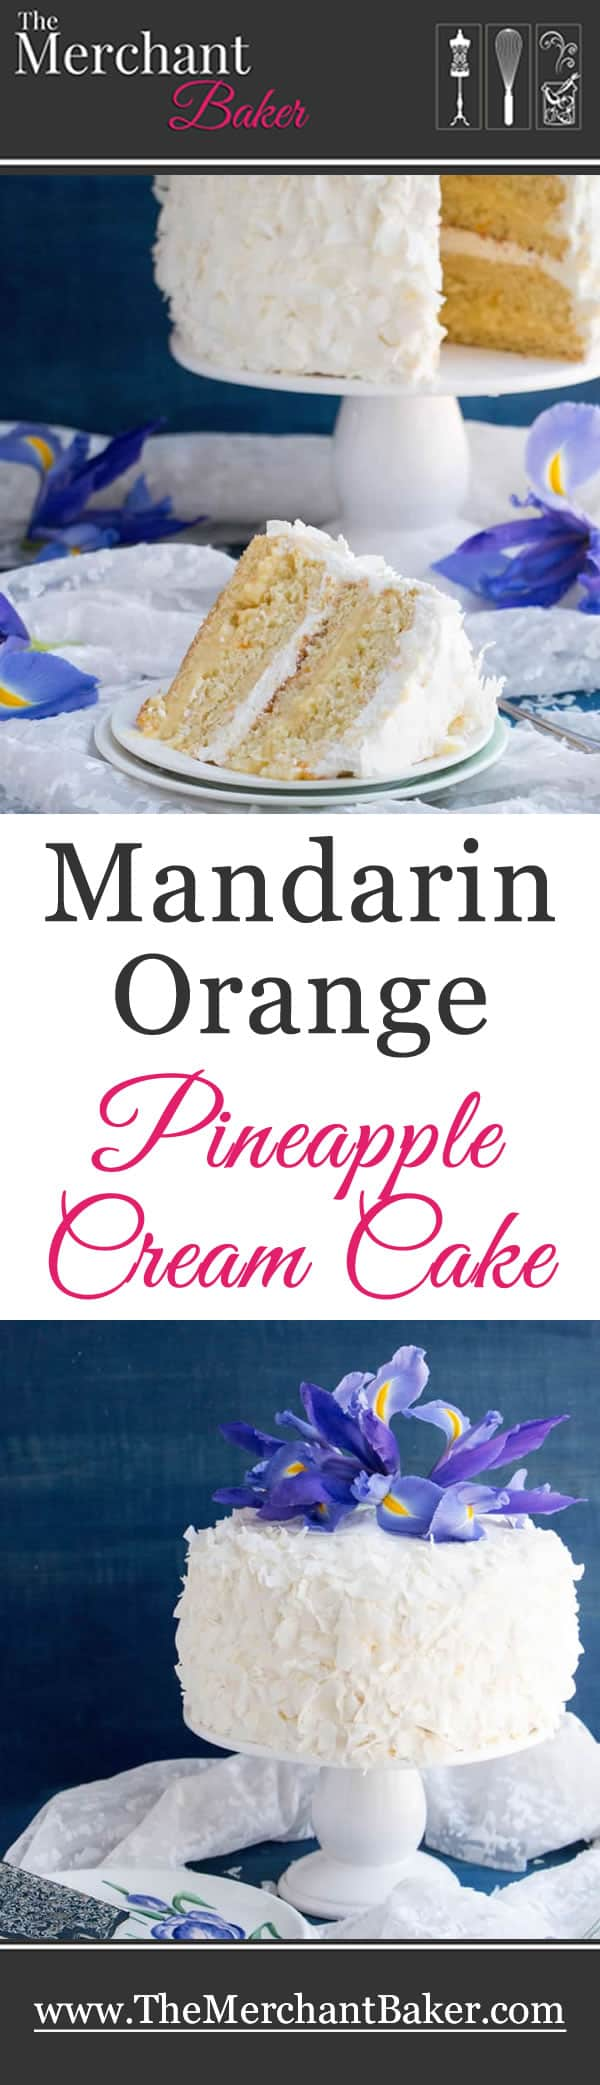 Mandarin Orange Pineapple Cream Cake